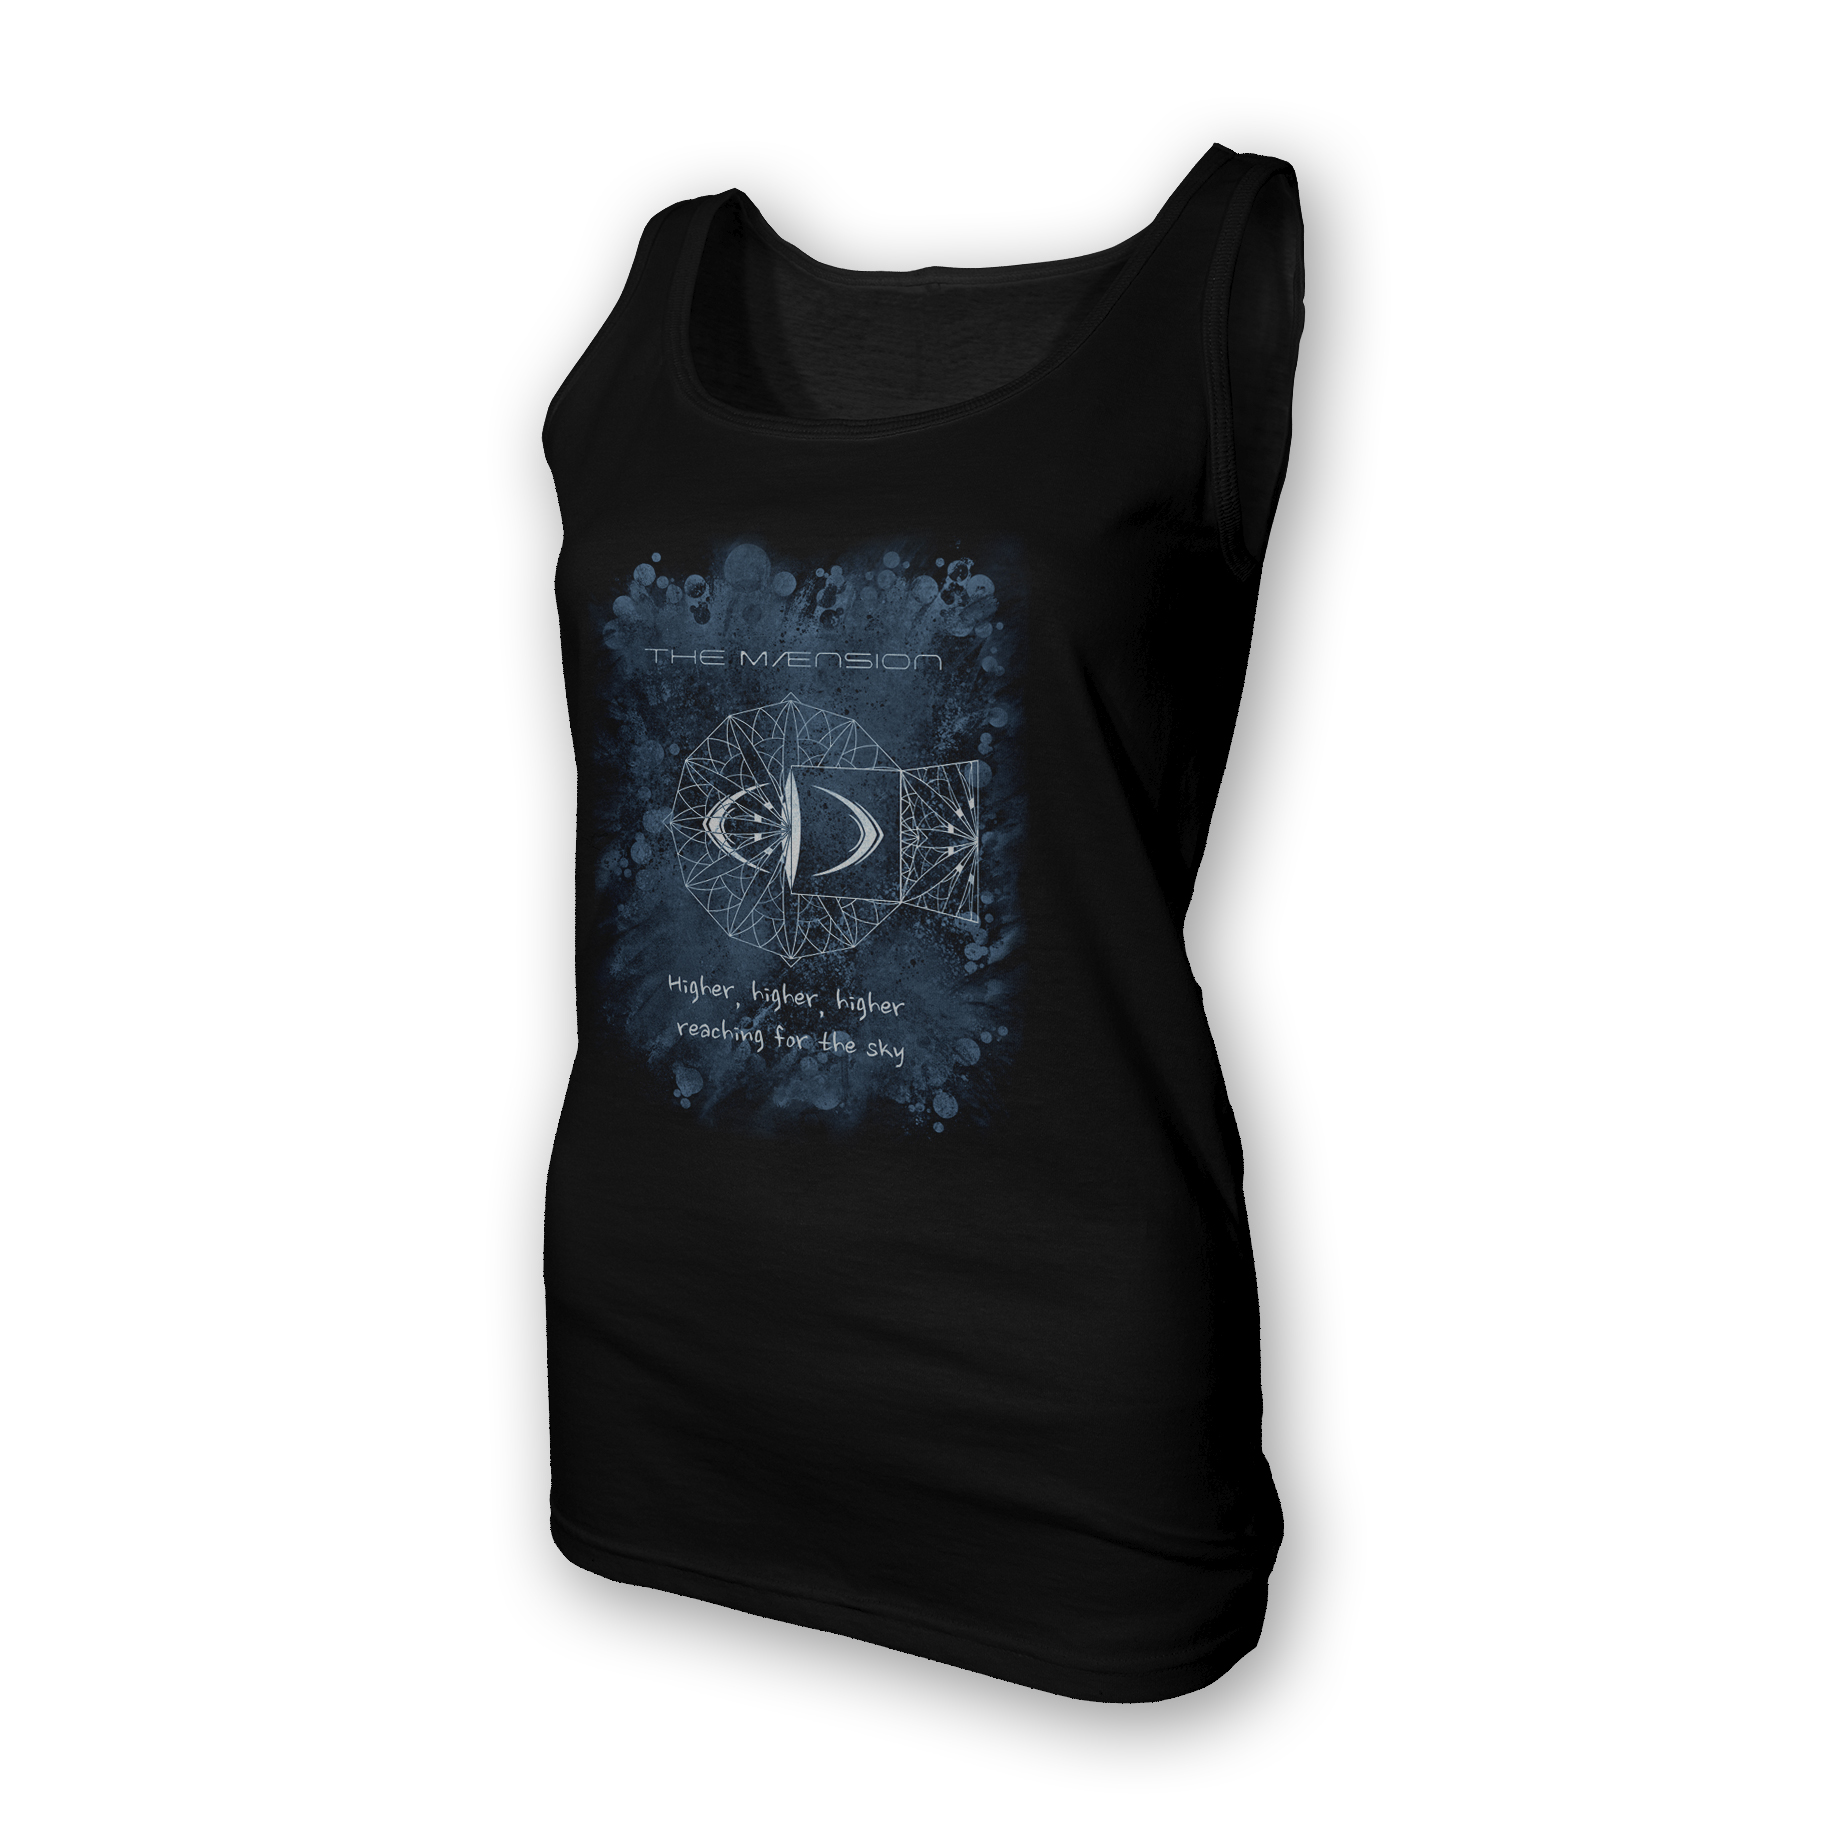 OPEN CAGE Tank Top